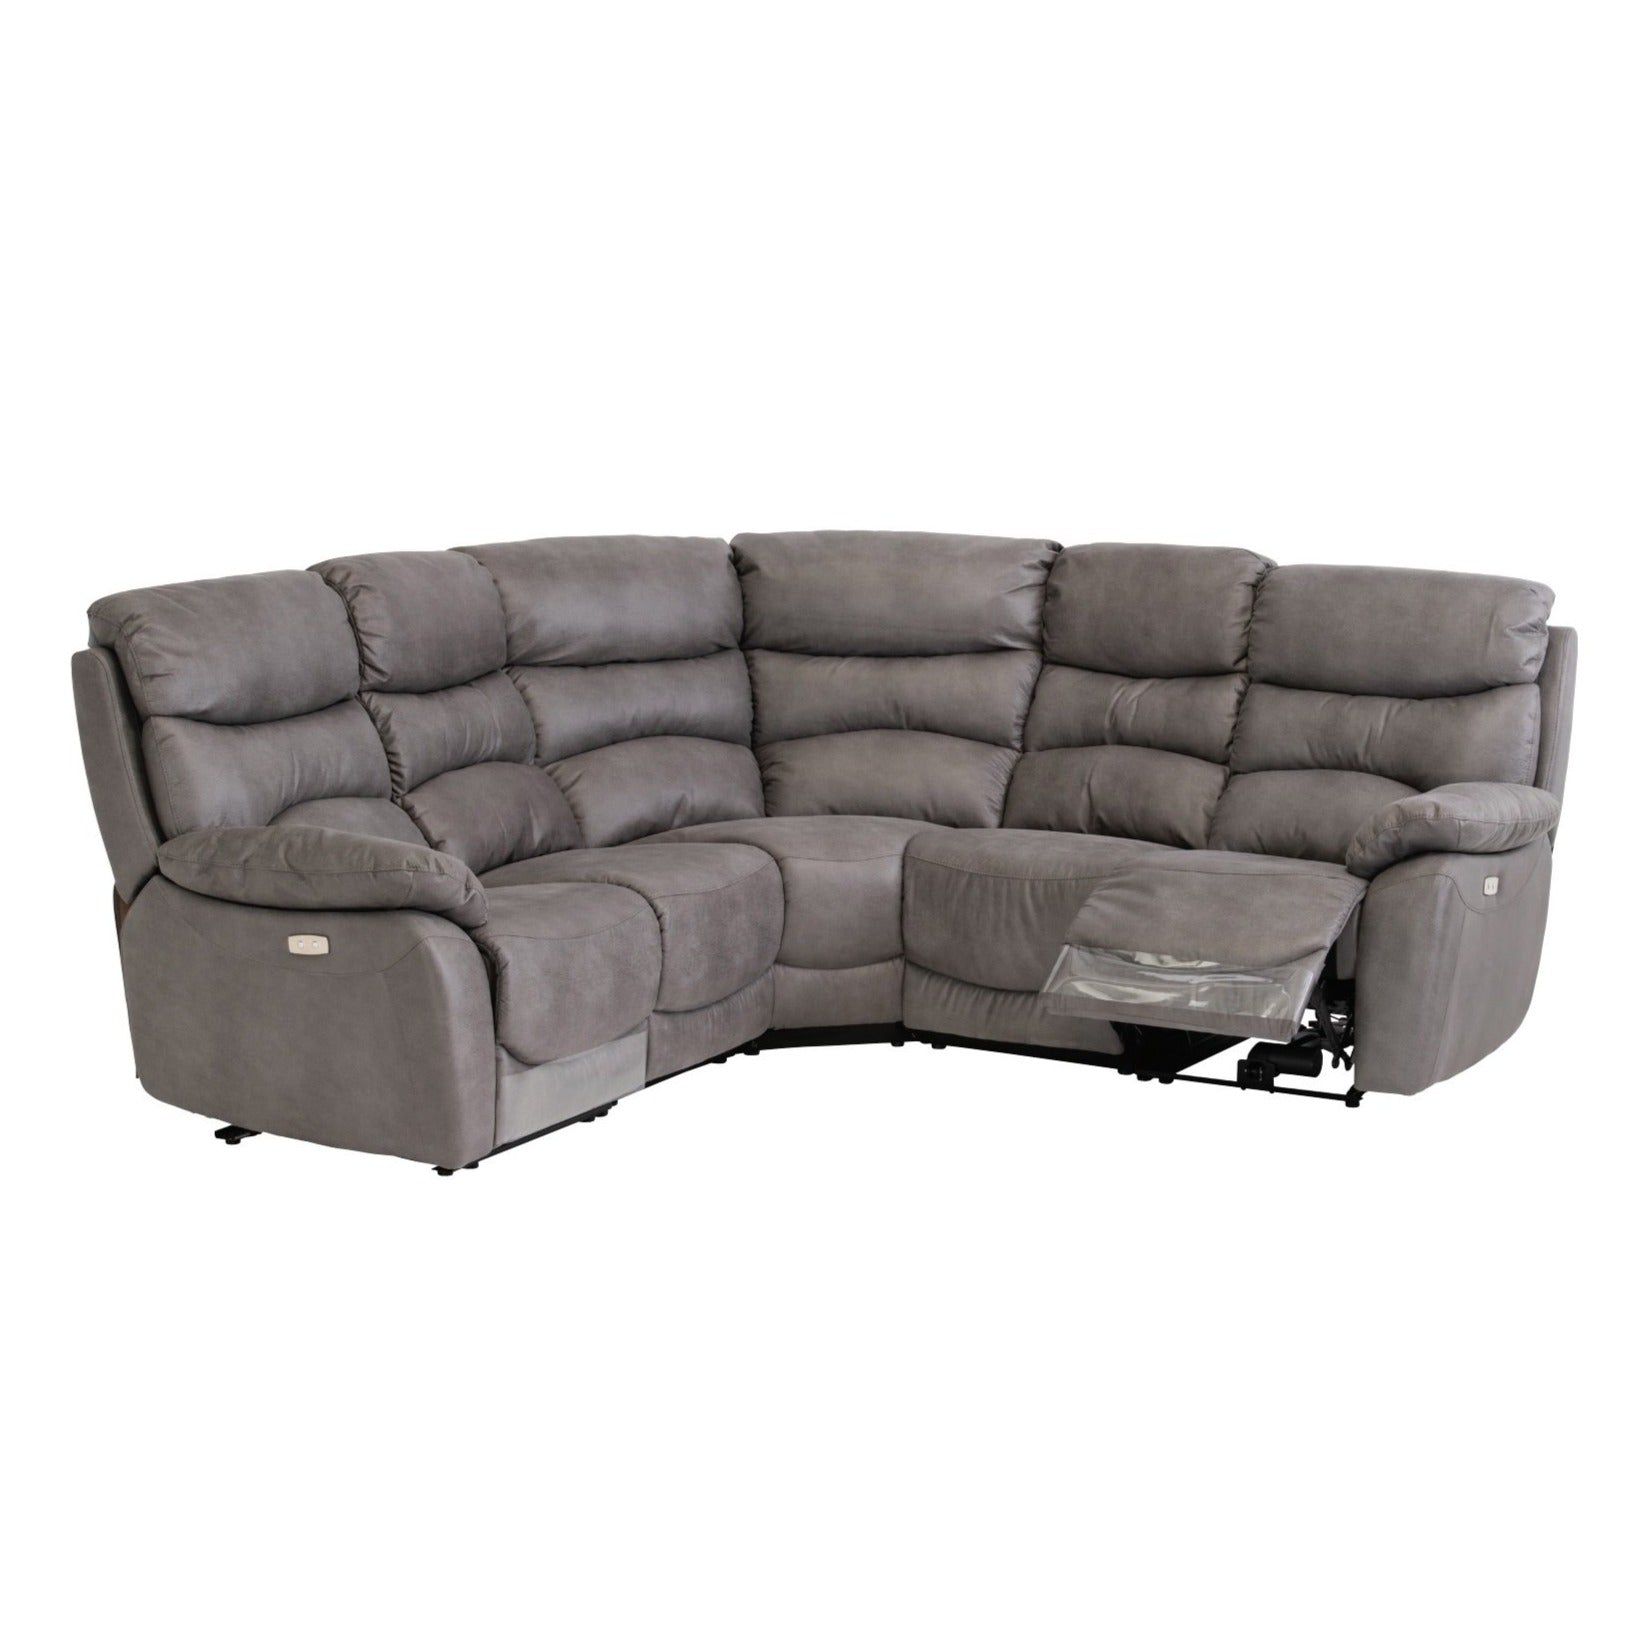 Lolly Power Reclining Corner Sofa